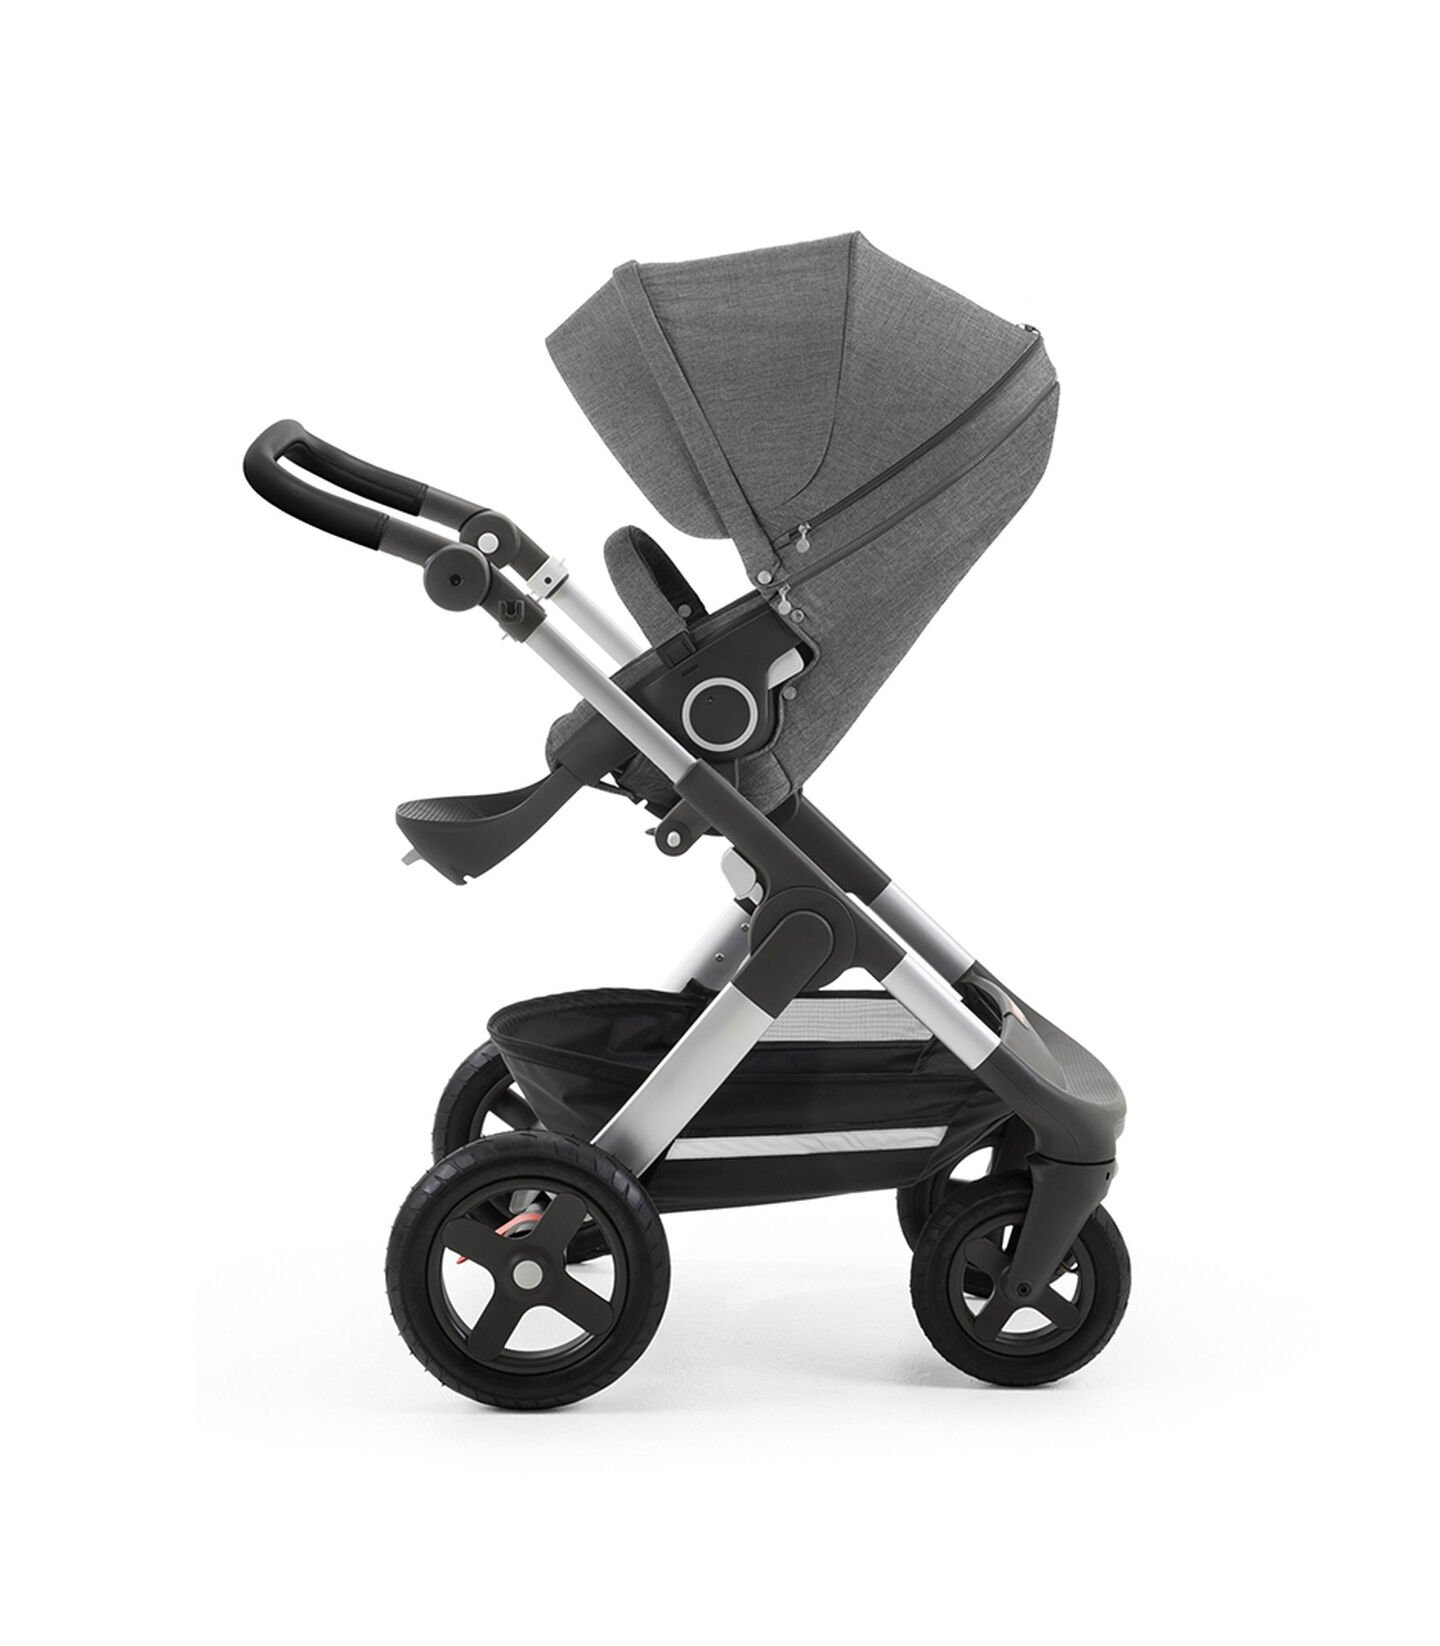 Stokke® Trailz™ with silver chassis and Stokke® Stroller Seat, Black Melange. Leatherette Handle. Terrain Wheels. view 2